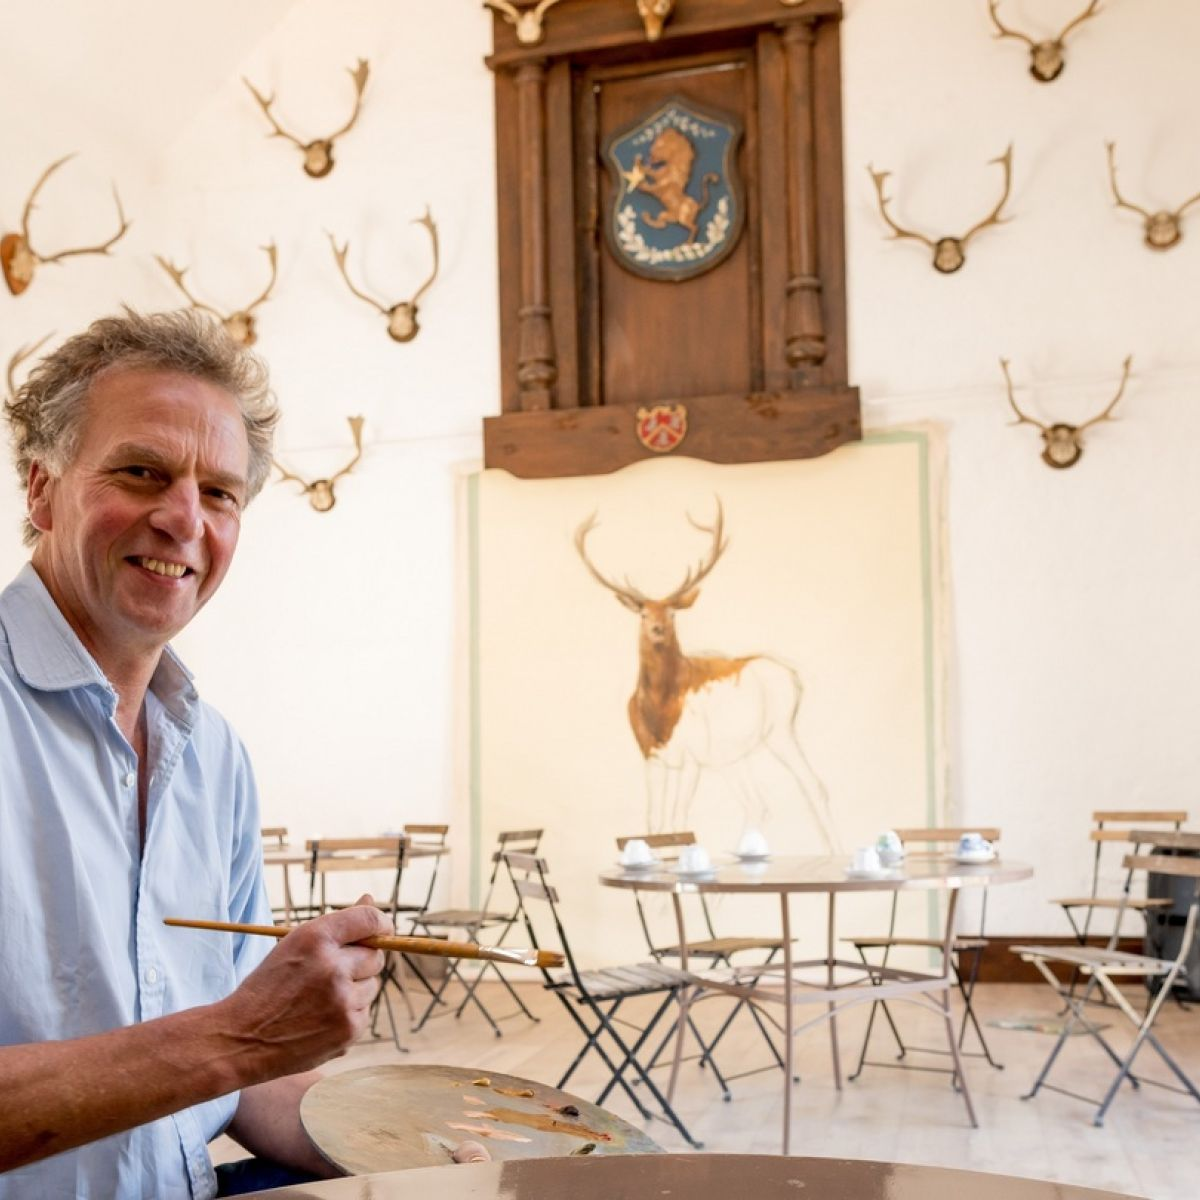 Off the wall: Irish mural artist paints castles and Caribbean cottages